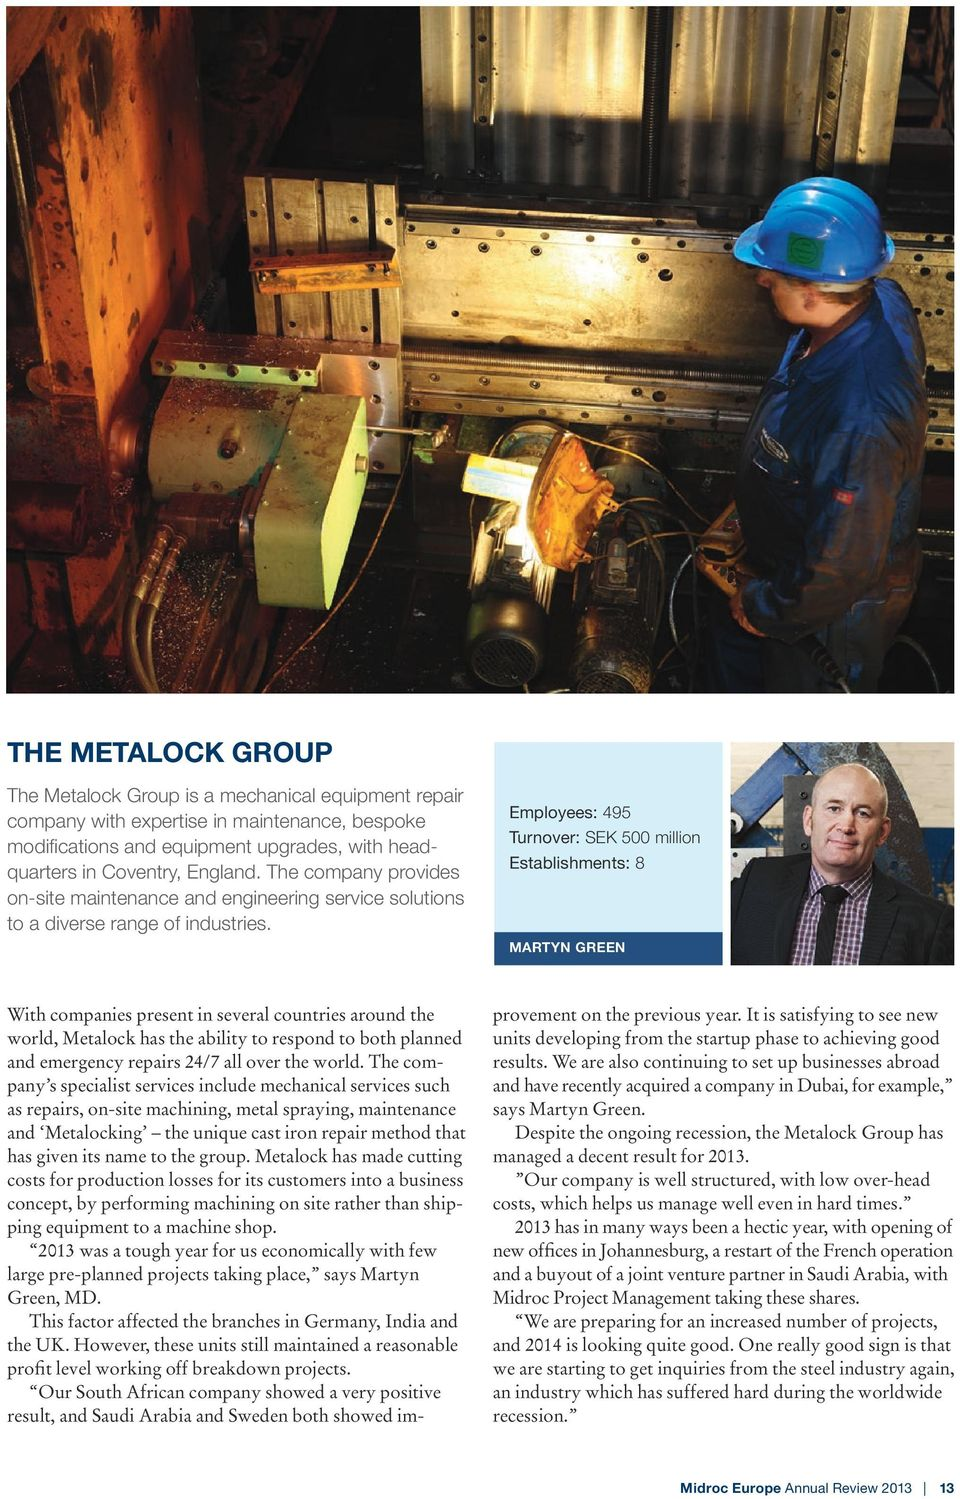 Employees: 495 Turnover: SEK 500 million Establishments: 8 MARTYN GREEN With companies present in several countries around the world, Metalock has the ability to respond to both planned and emergency